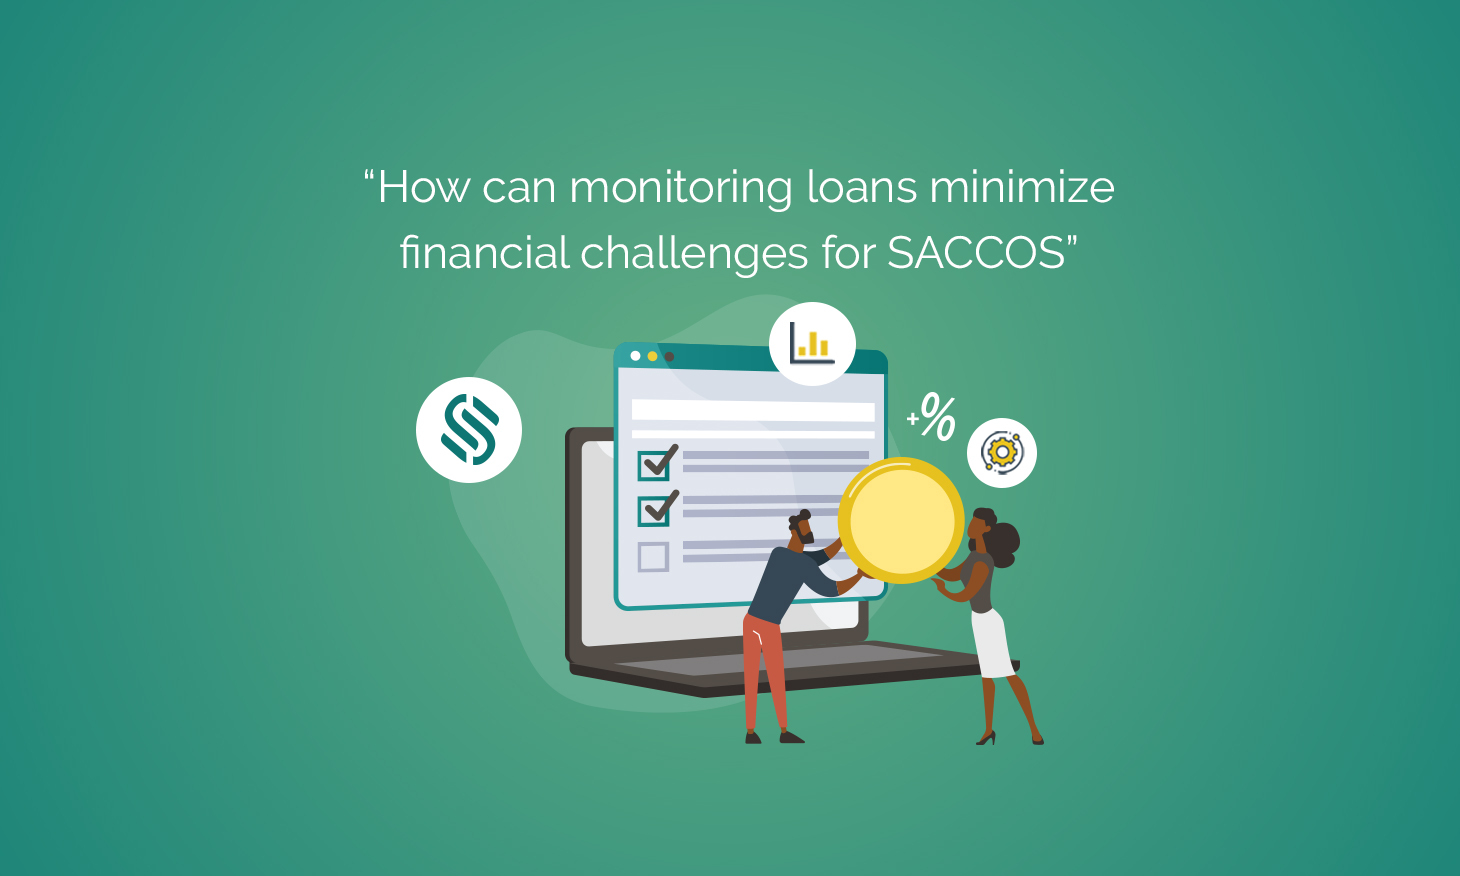 How can monitoring loans minimize financial challenges for SACCOS